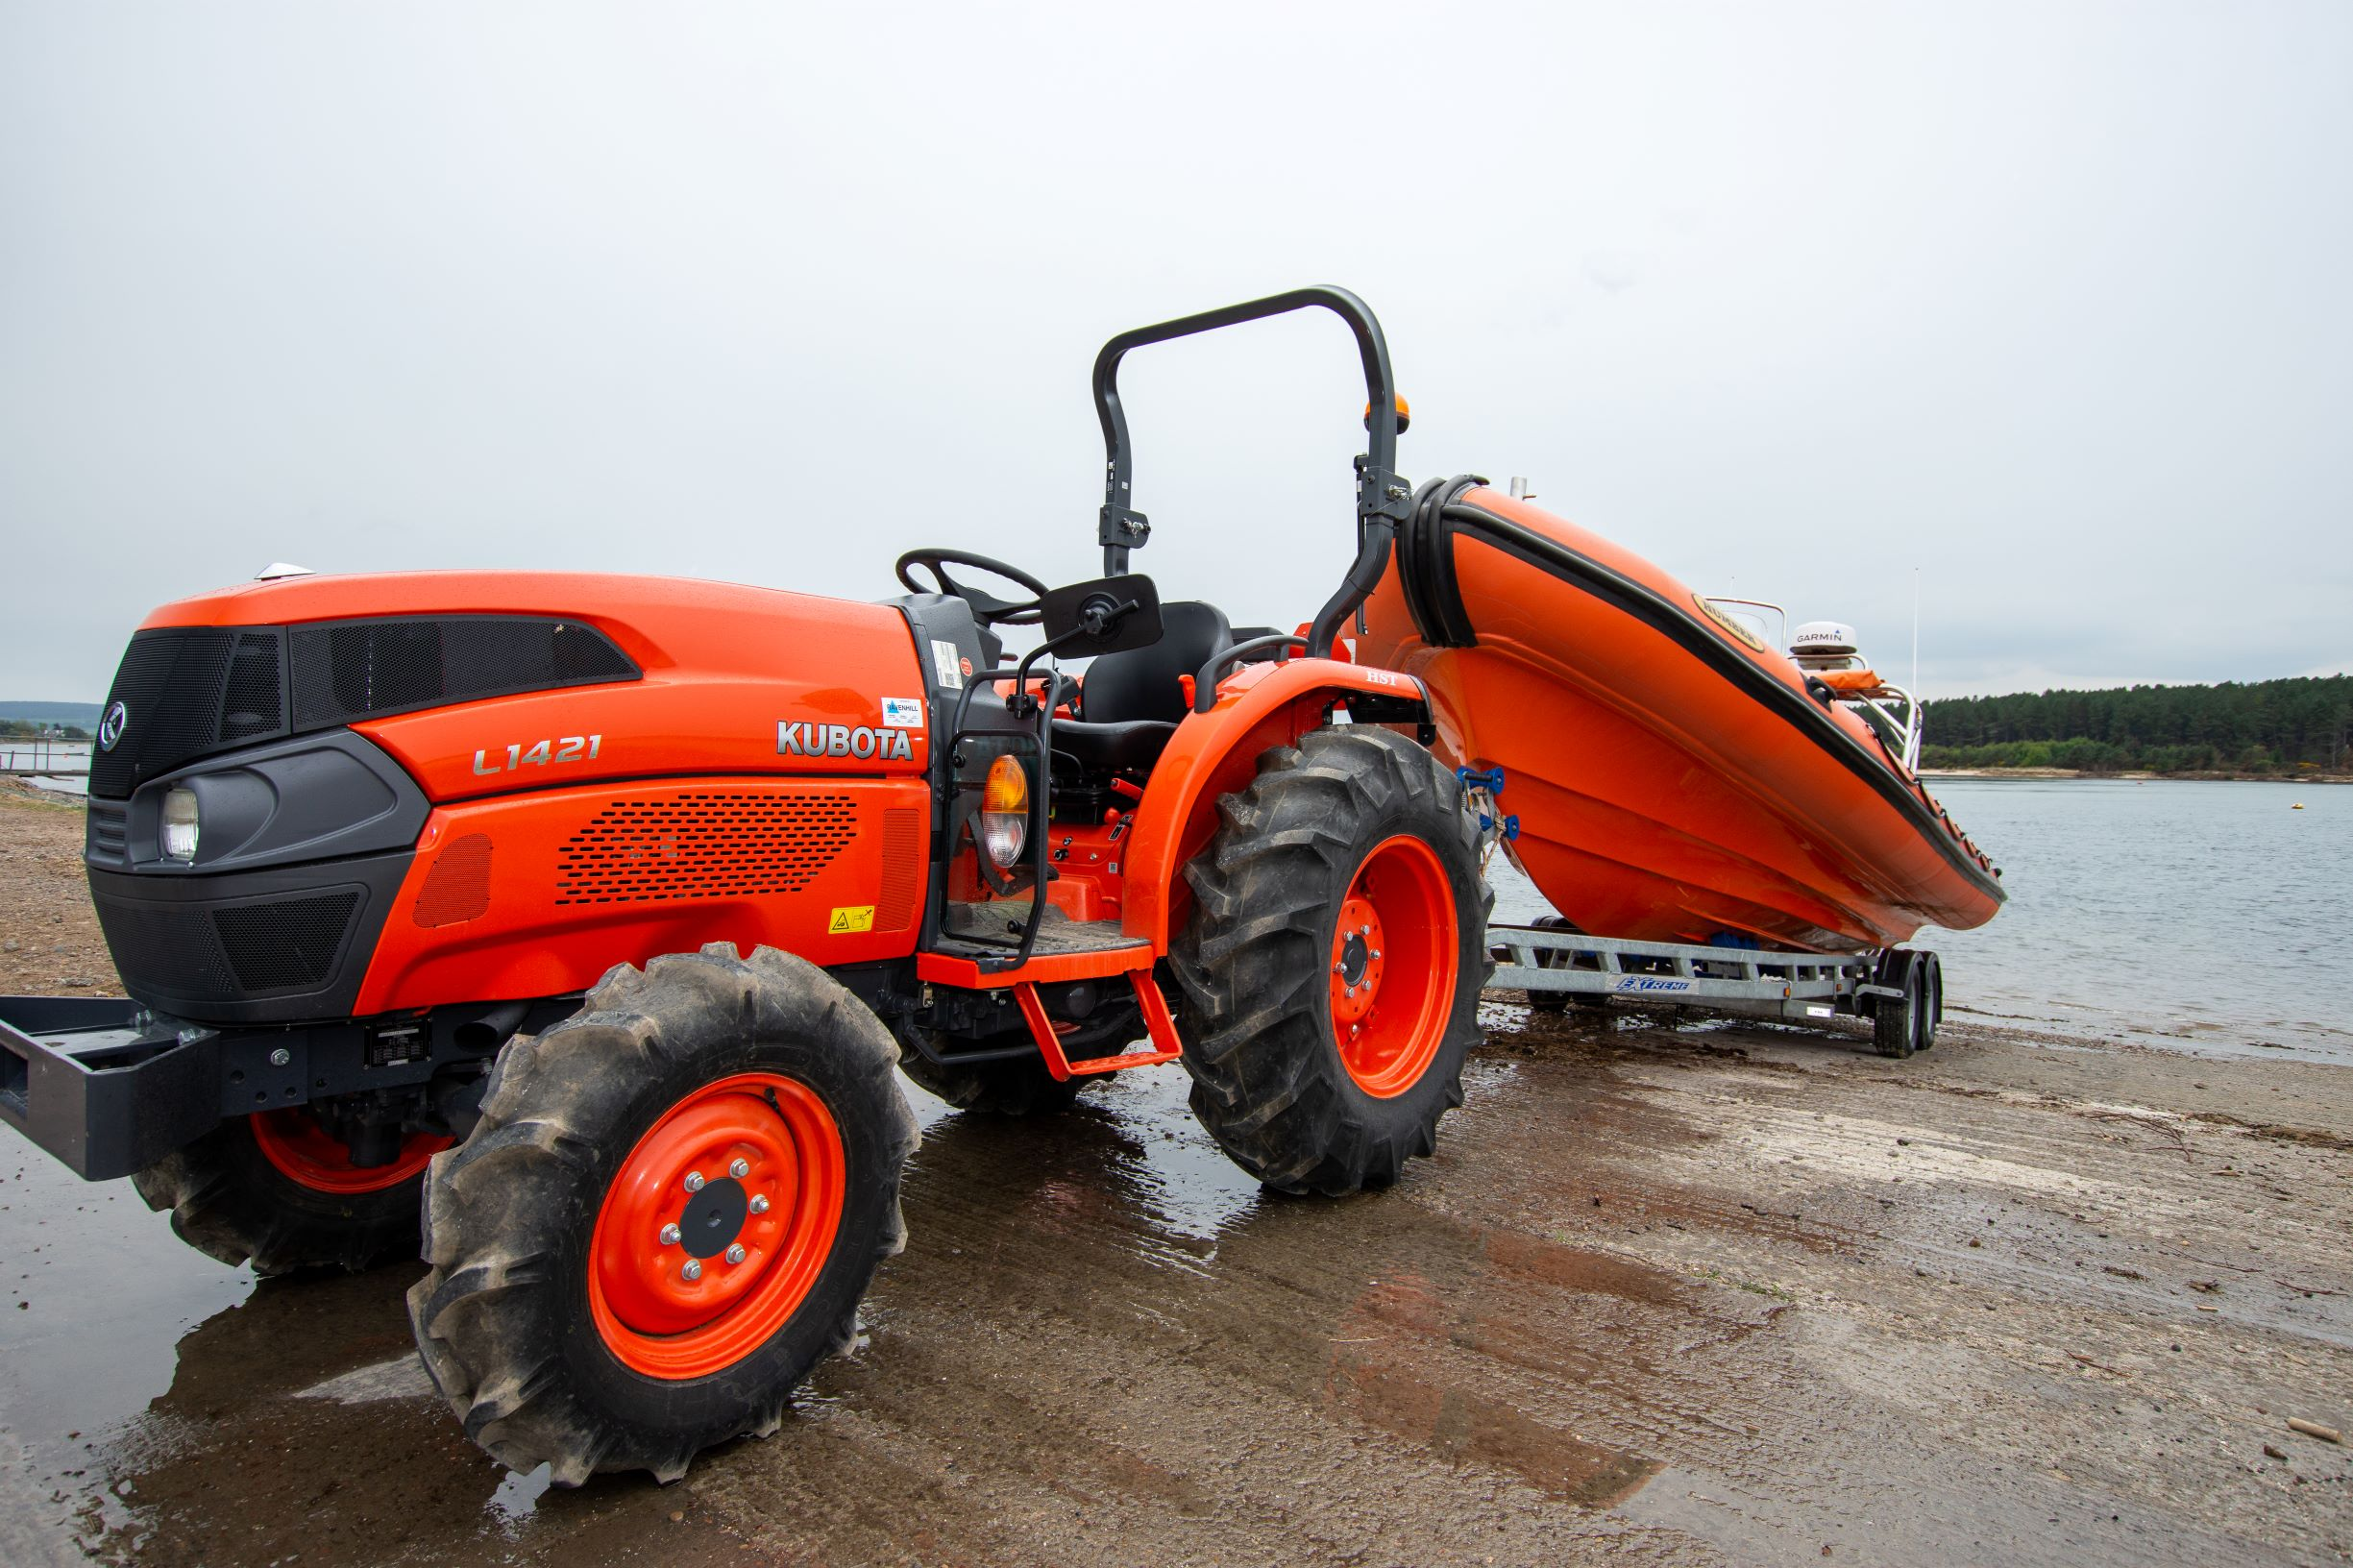 Miro's new tractor will help the group launch the lifeboat in winter.